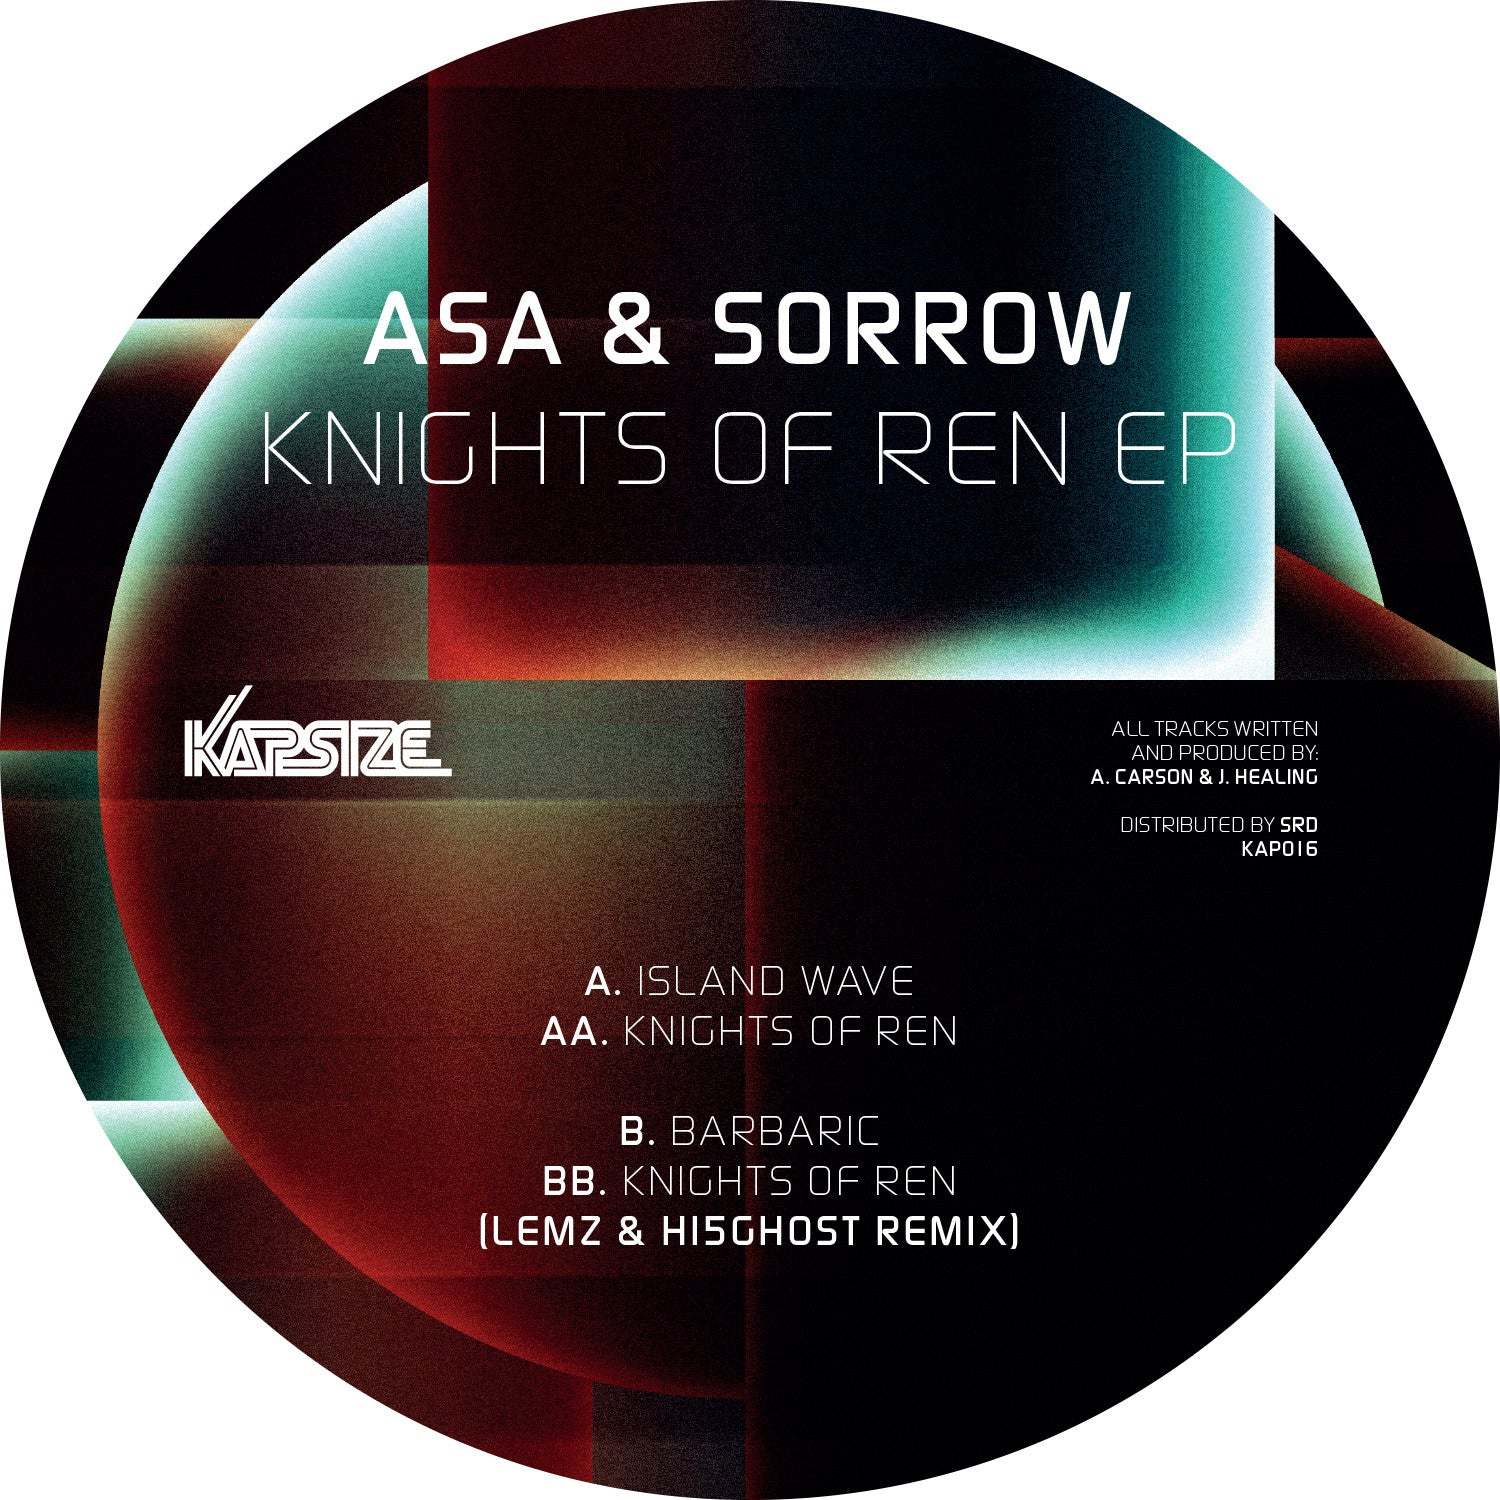 Asa & Sorrow - Knights of Ren - Unearthed Sounds